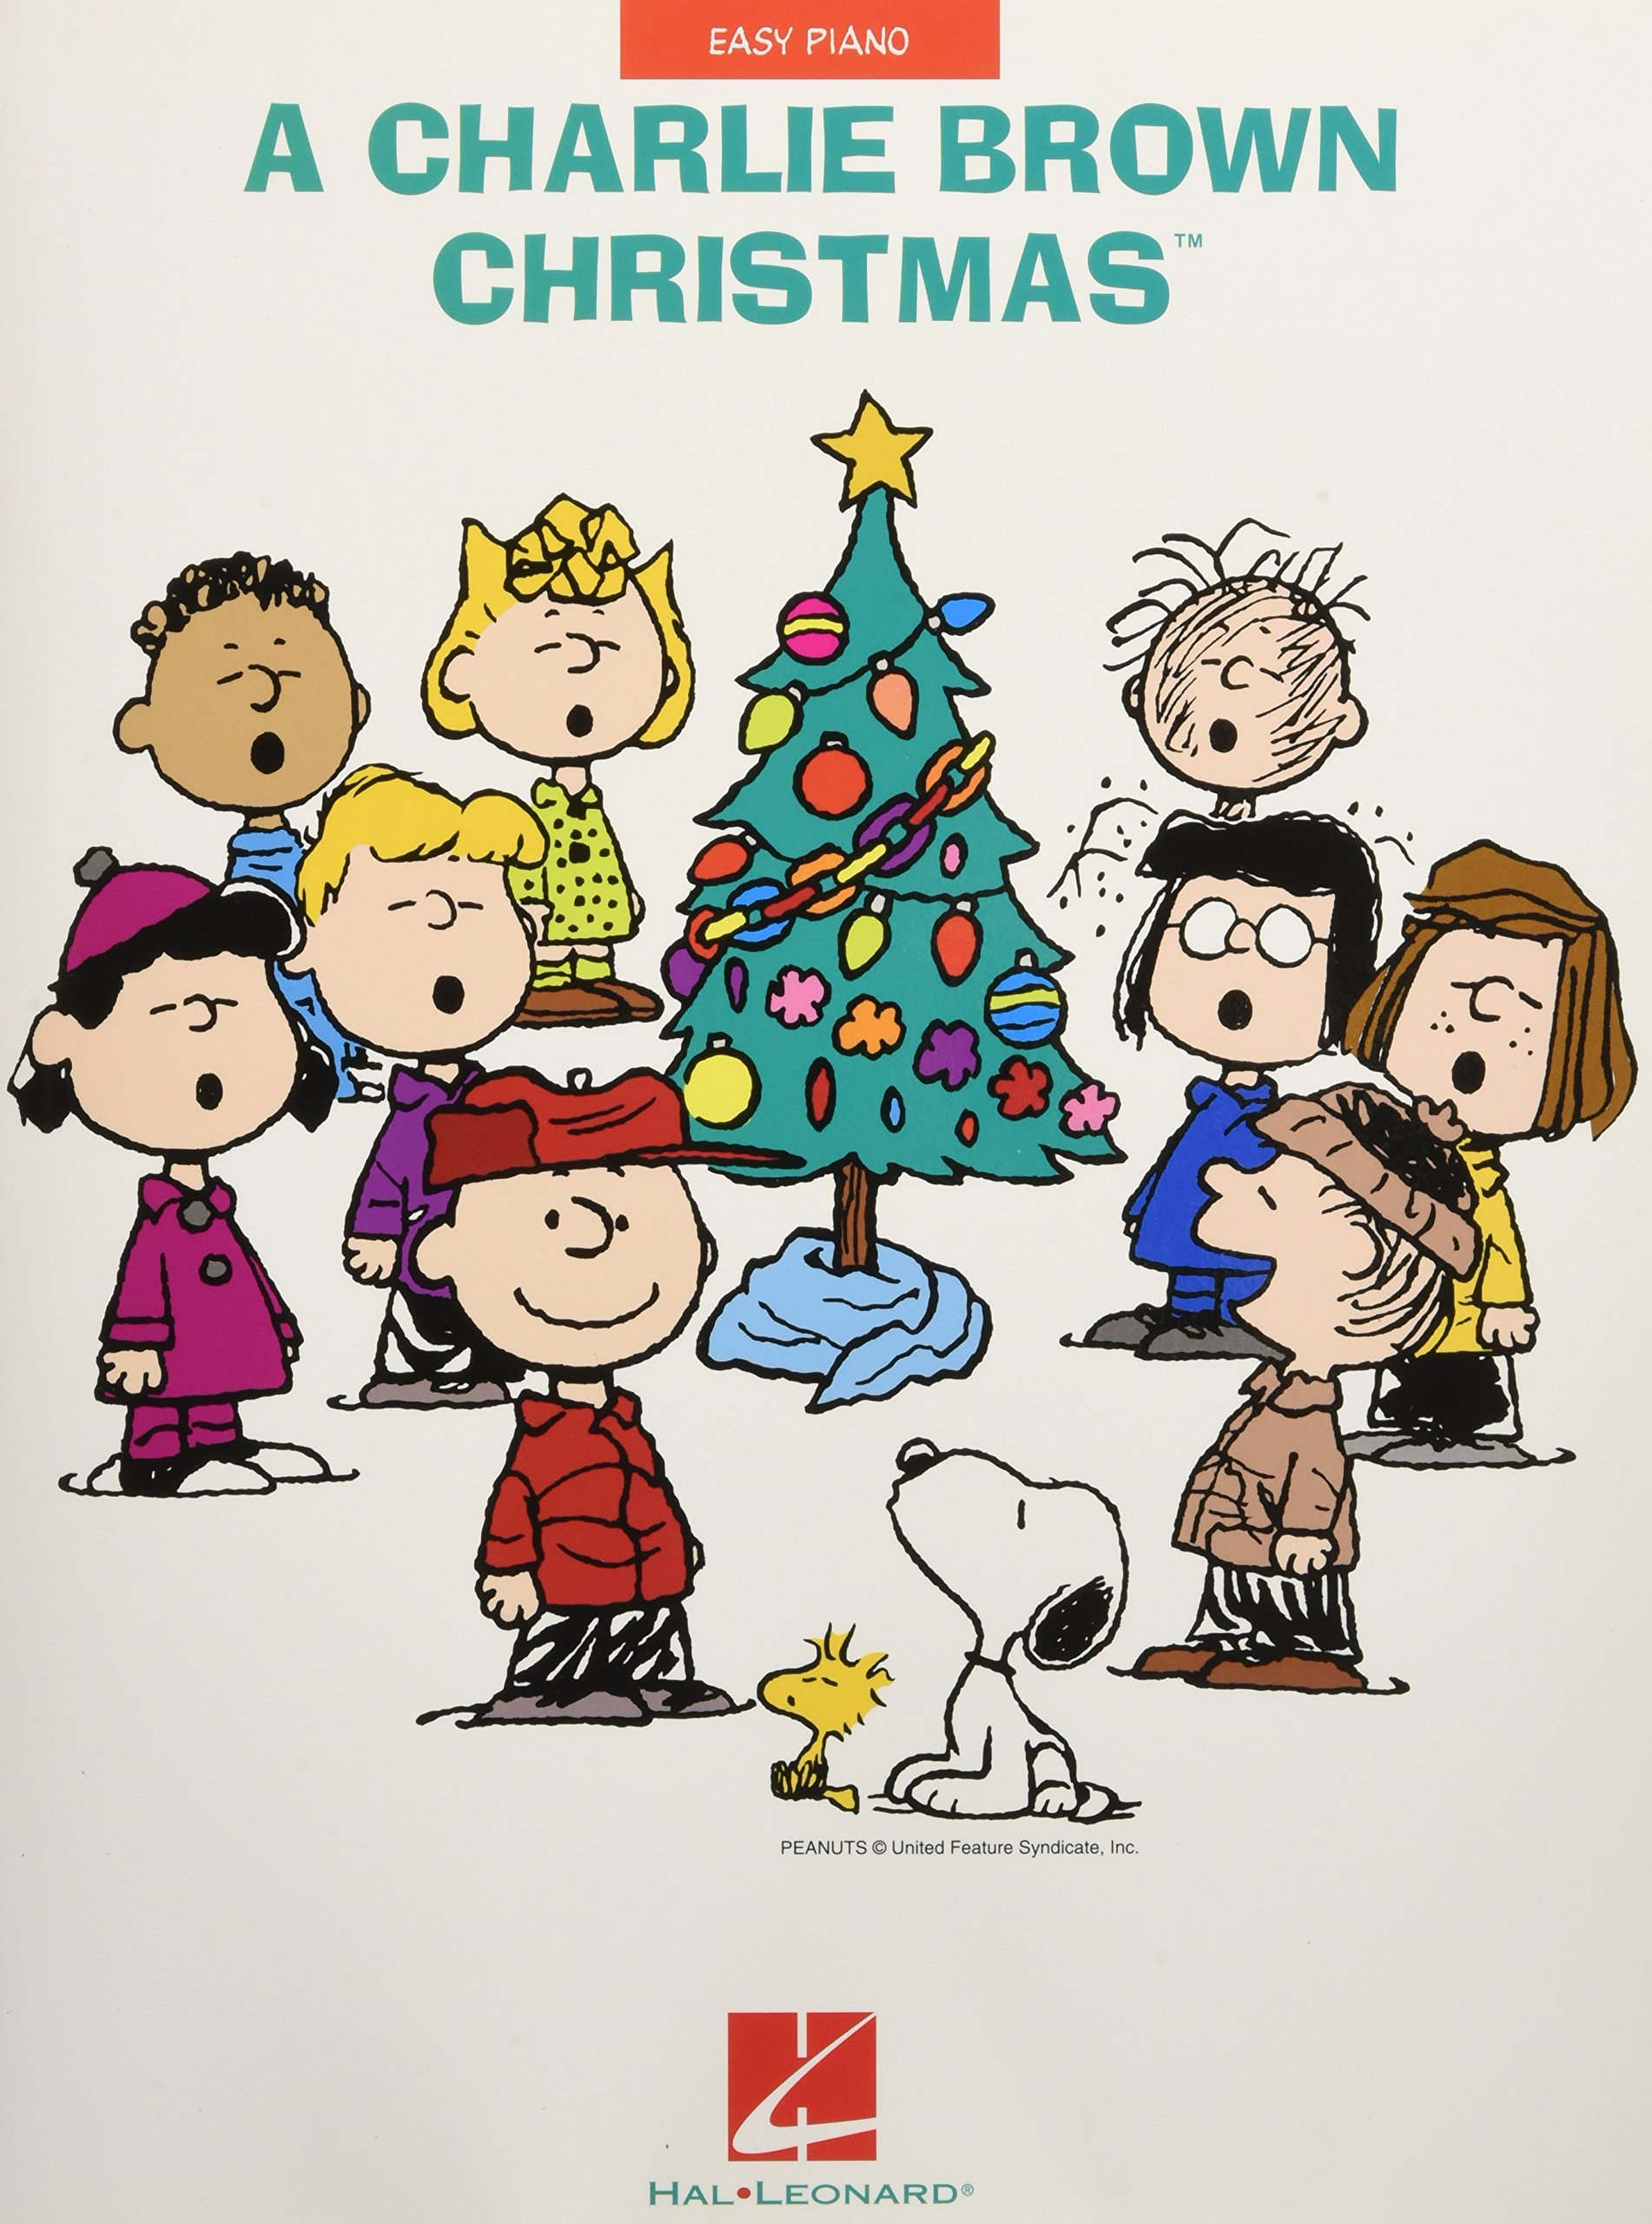 A Charlie Brown Christmas(TM)(Easy Piano)